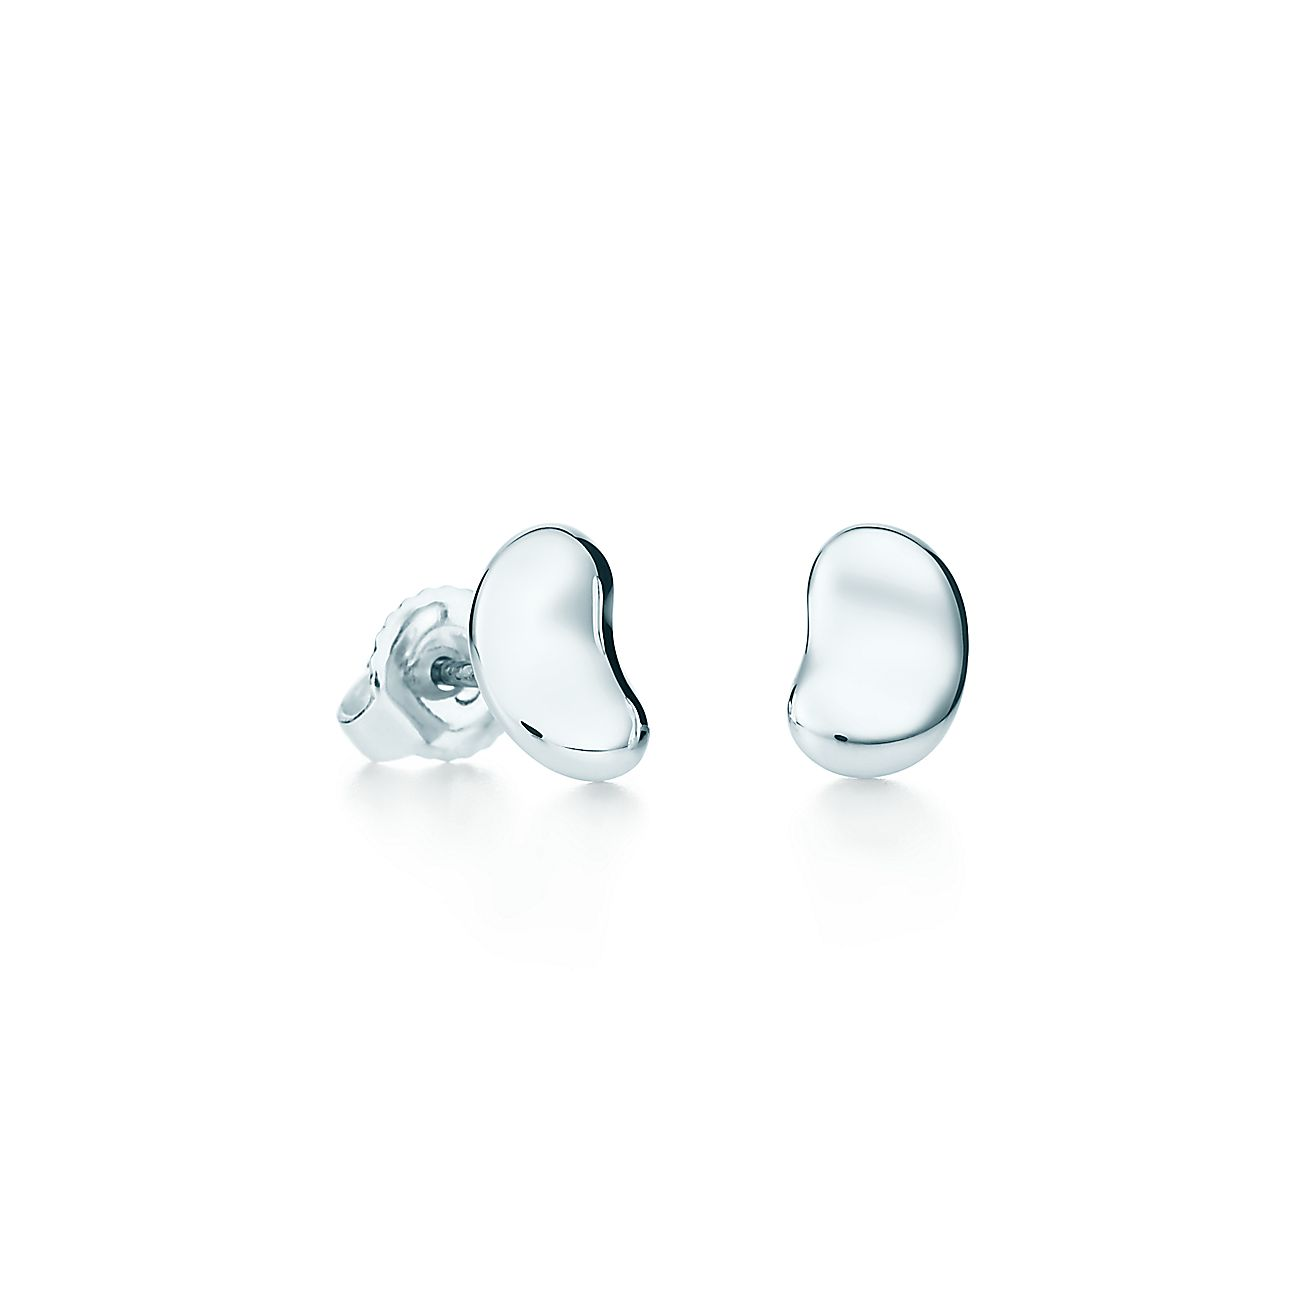 Elsa Peretti Bean Design Earrings In Sterling Silver Tiffany Co